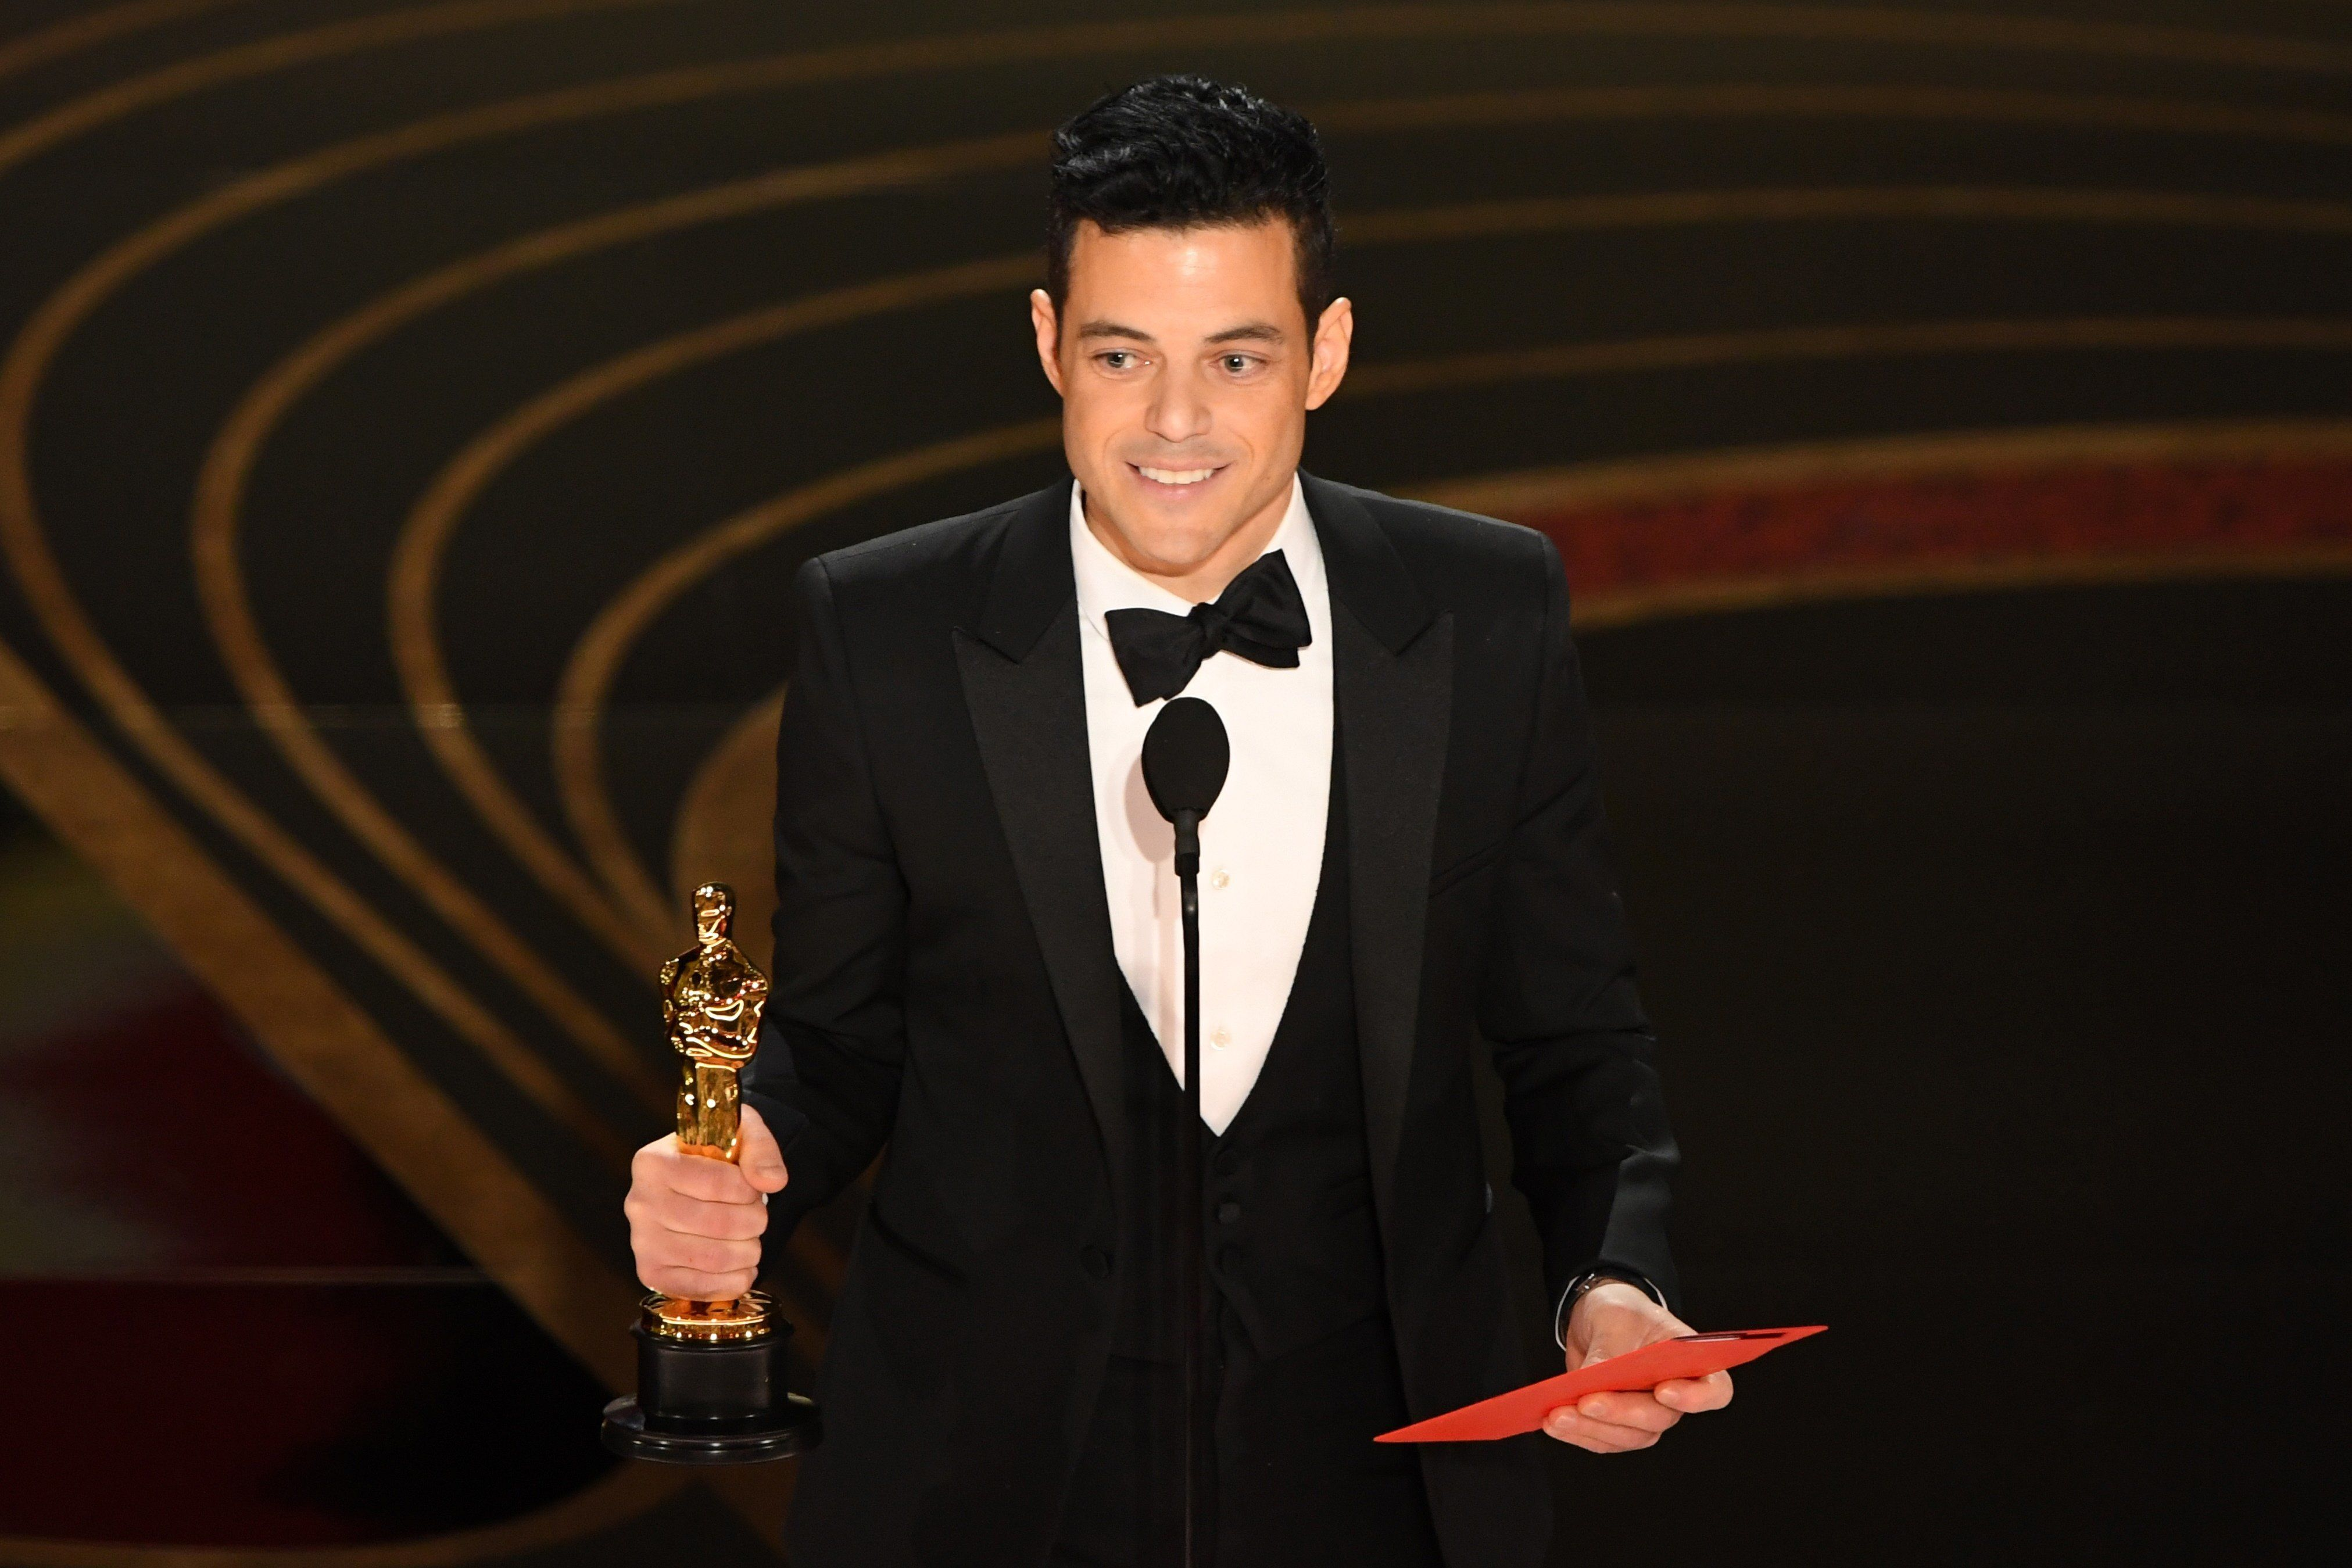 Best Actor winner for 'Bohemian Rhapsody' Rami Malek accepts his award onstage during the 91st Annual Academy Awards at the Dolby Theatre in Hollywood, California on February 24, 2019. (Photo by VALERIE MACON / AFP)        (Photo credit should read VALERIE MACON/AFP/Getty Images)